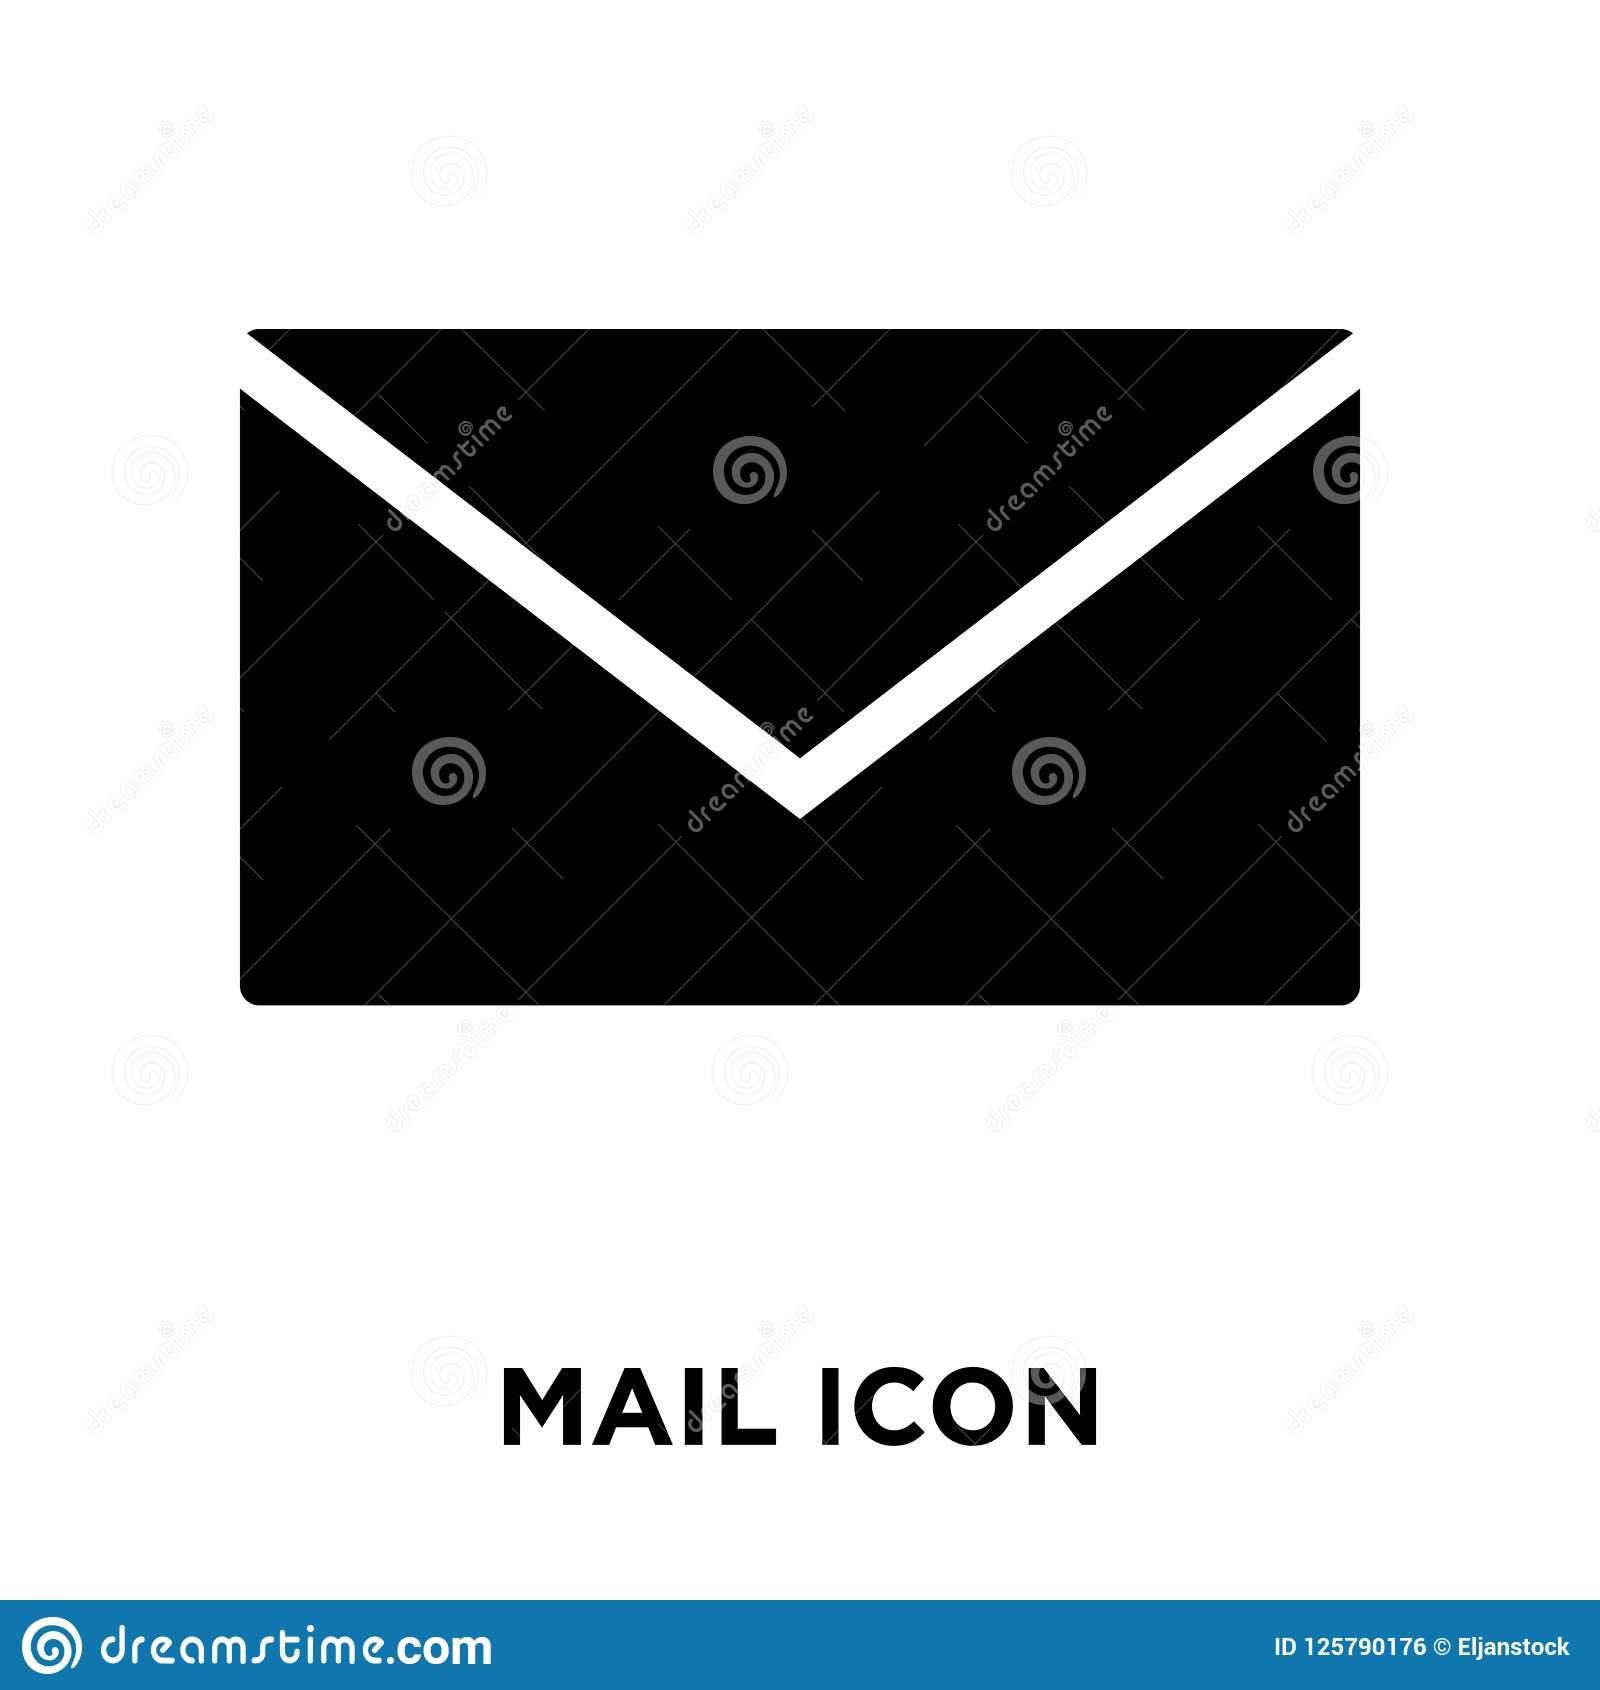 Mail icon vector isolated on white background, logo concept of M